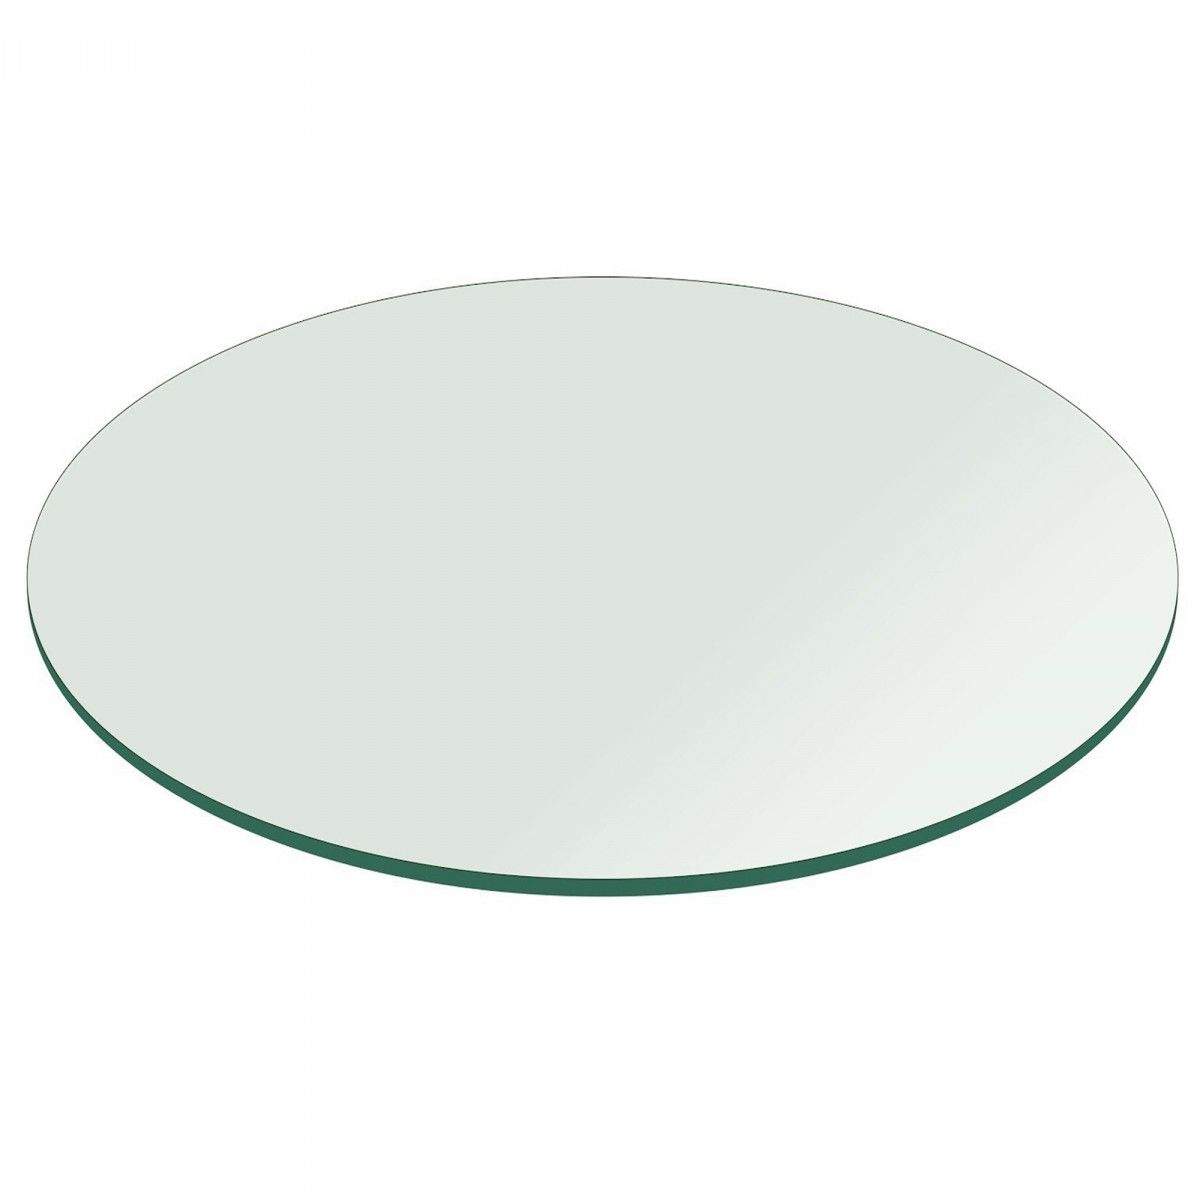 36 Inch Round Glass Table Top 1 4 Inch Thick Clear Tempered Glass With Flat Edge Polished Walmart Com W Round Glass Table Round Glass Table Top Glass Table 36 round glass table top